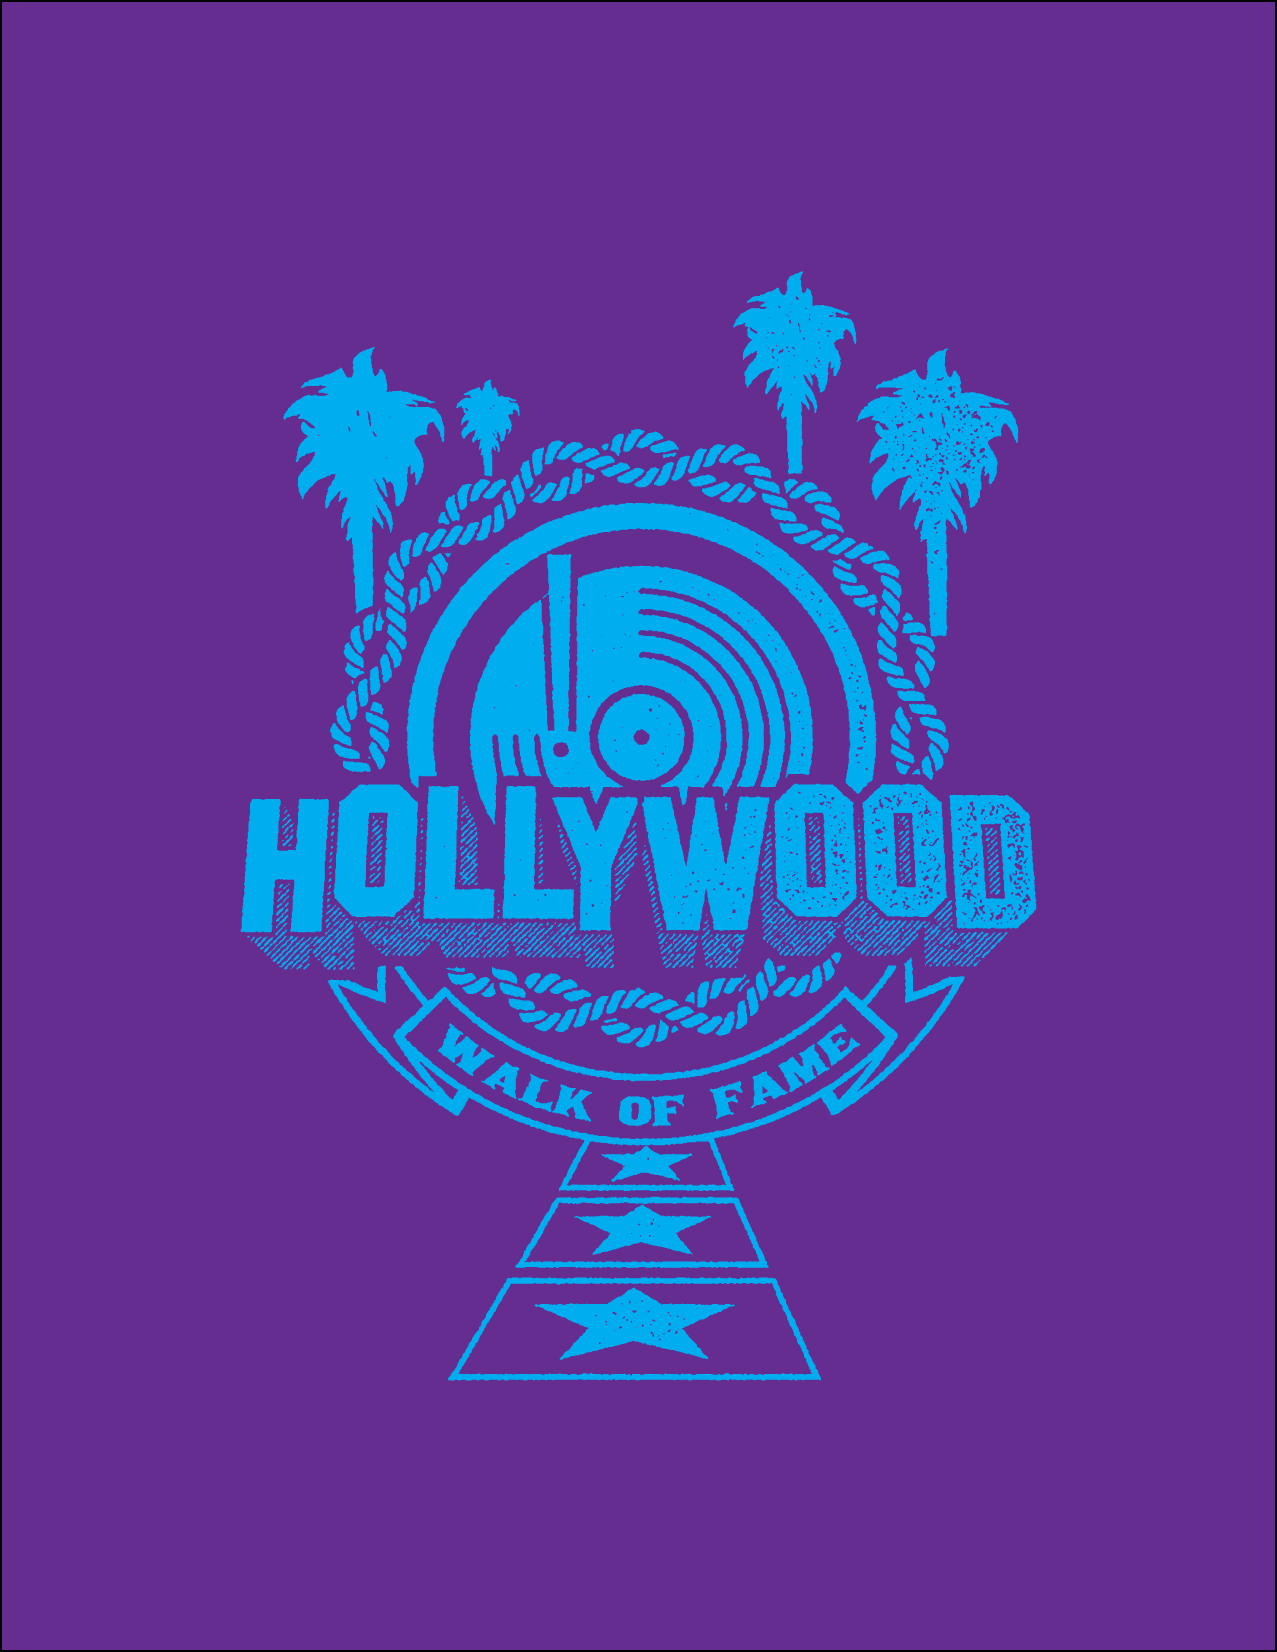 MM_Hollywood_Graphics_6.png